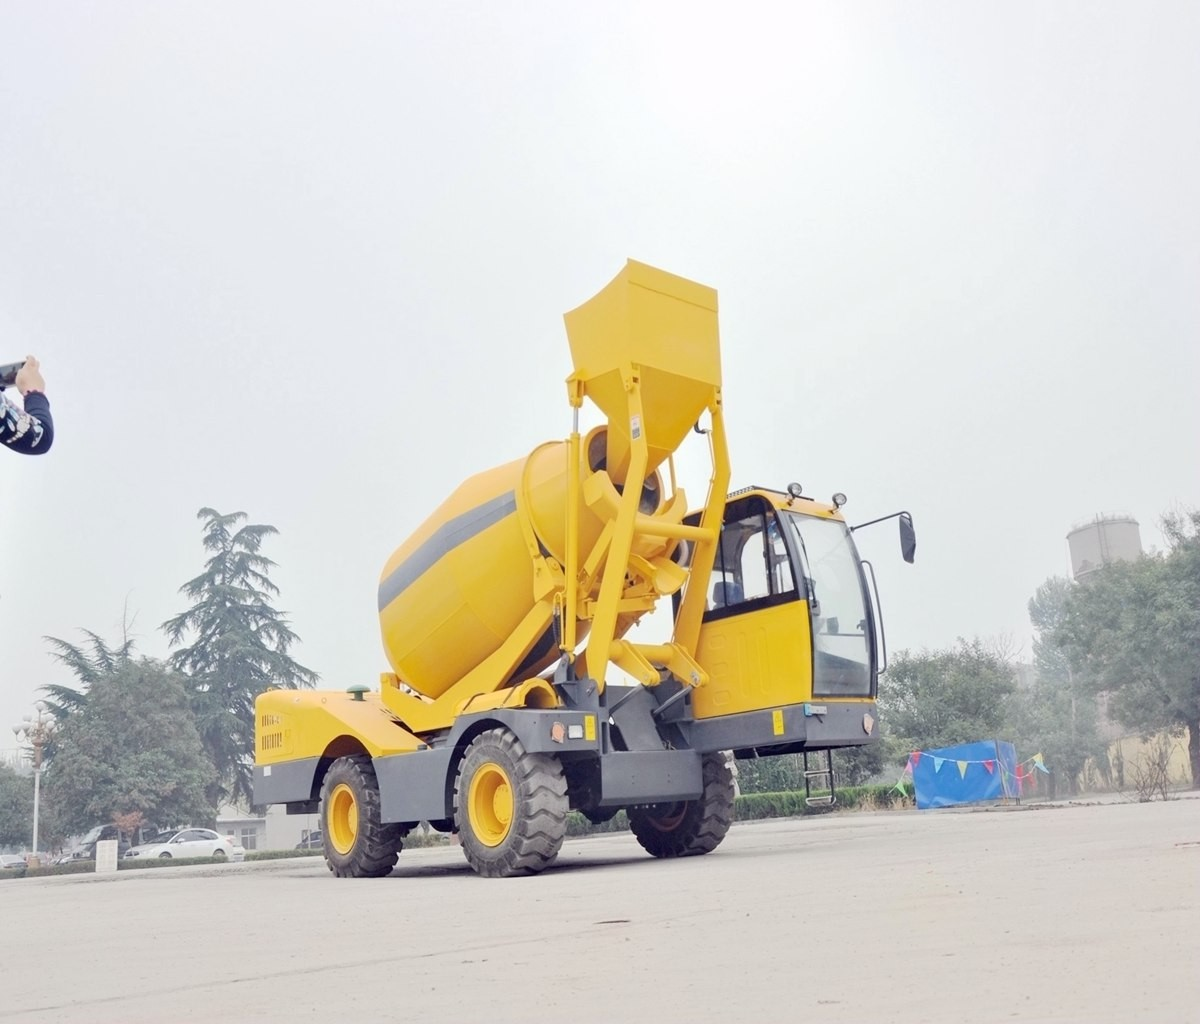 Sales 2018 China Best Price Mobile Self-loading Concrete Mixer In HANK, Buy 2018 China Best Price Mobile Self-loading Concrete Mixer In HANK, 2018 China Best Price Mobile Self-loading Concrete Mixer In HANK Factory, 2018 China Best Price Mobile Self-loading Concrete Mixer In HANK Brands